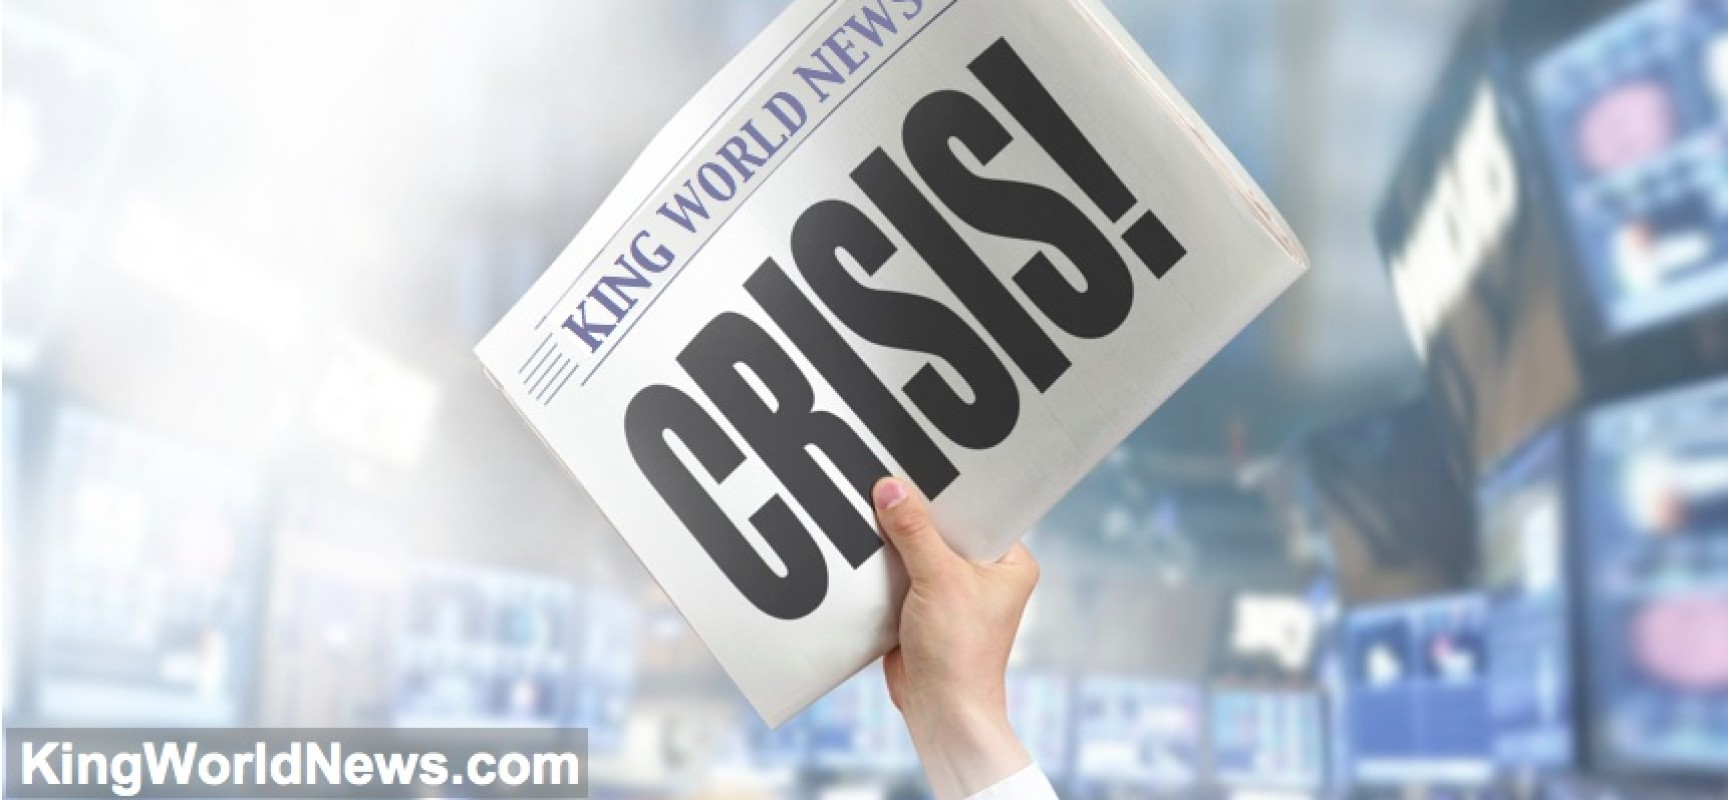 The World Is Now Facing The Most Frightening And Dangerous Crisis In Modern History